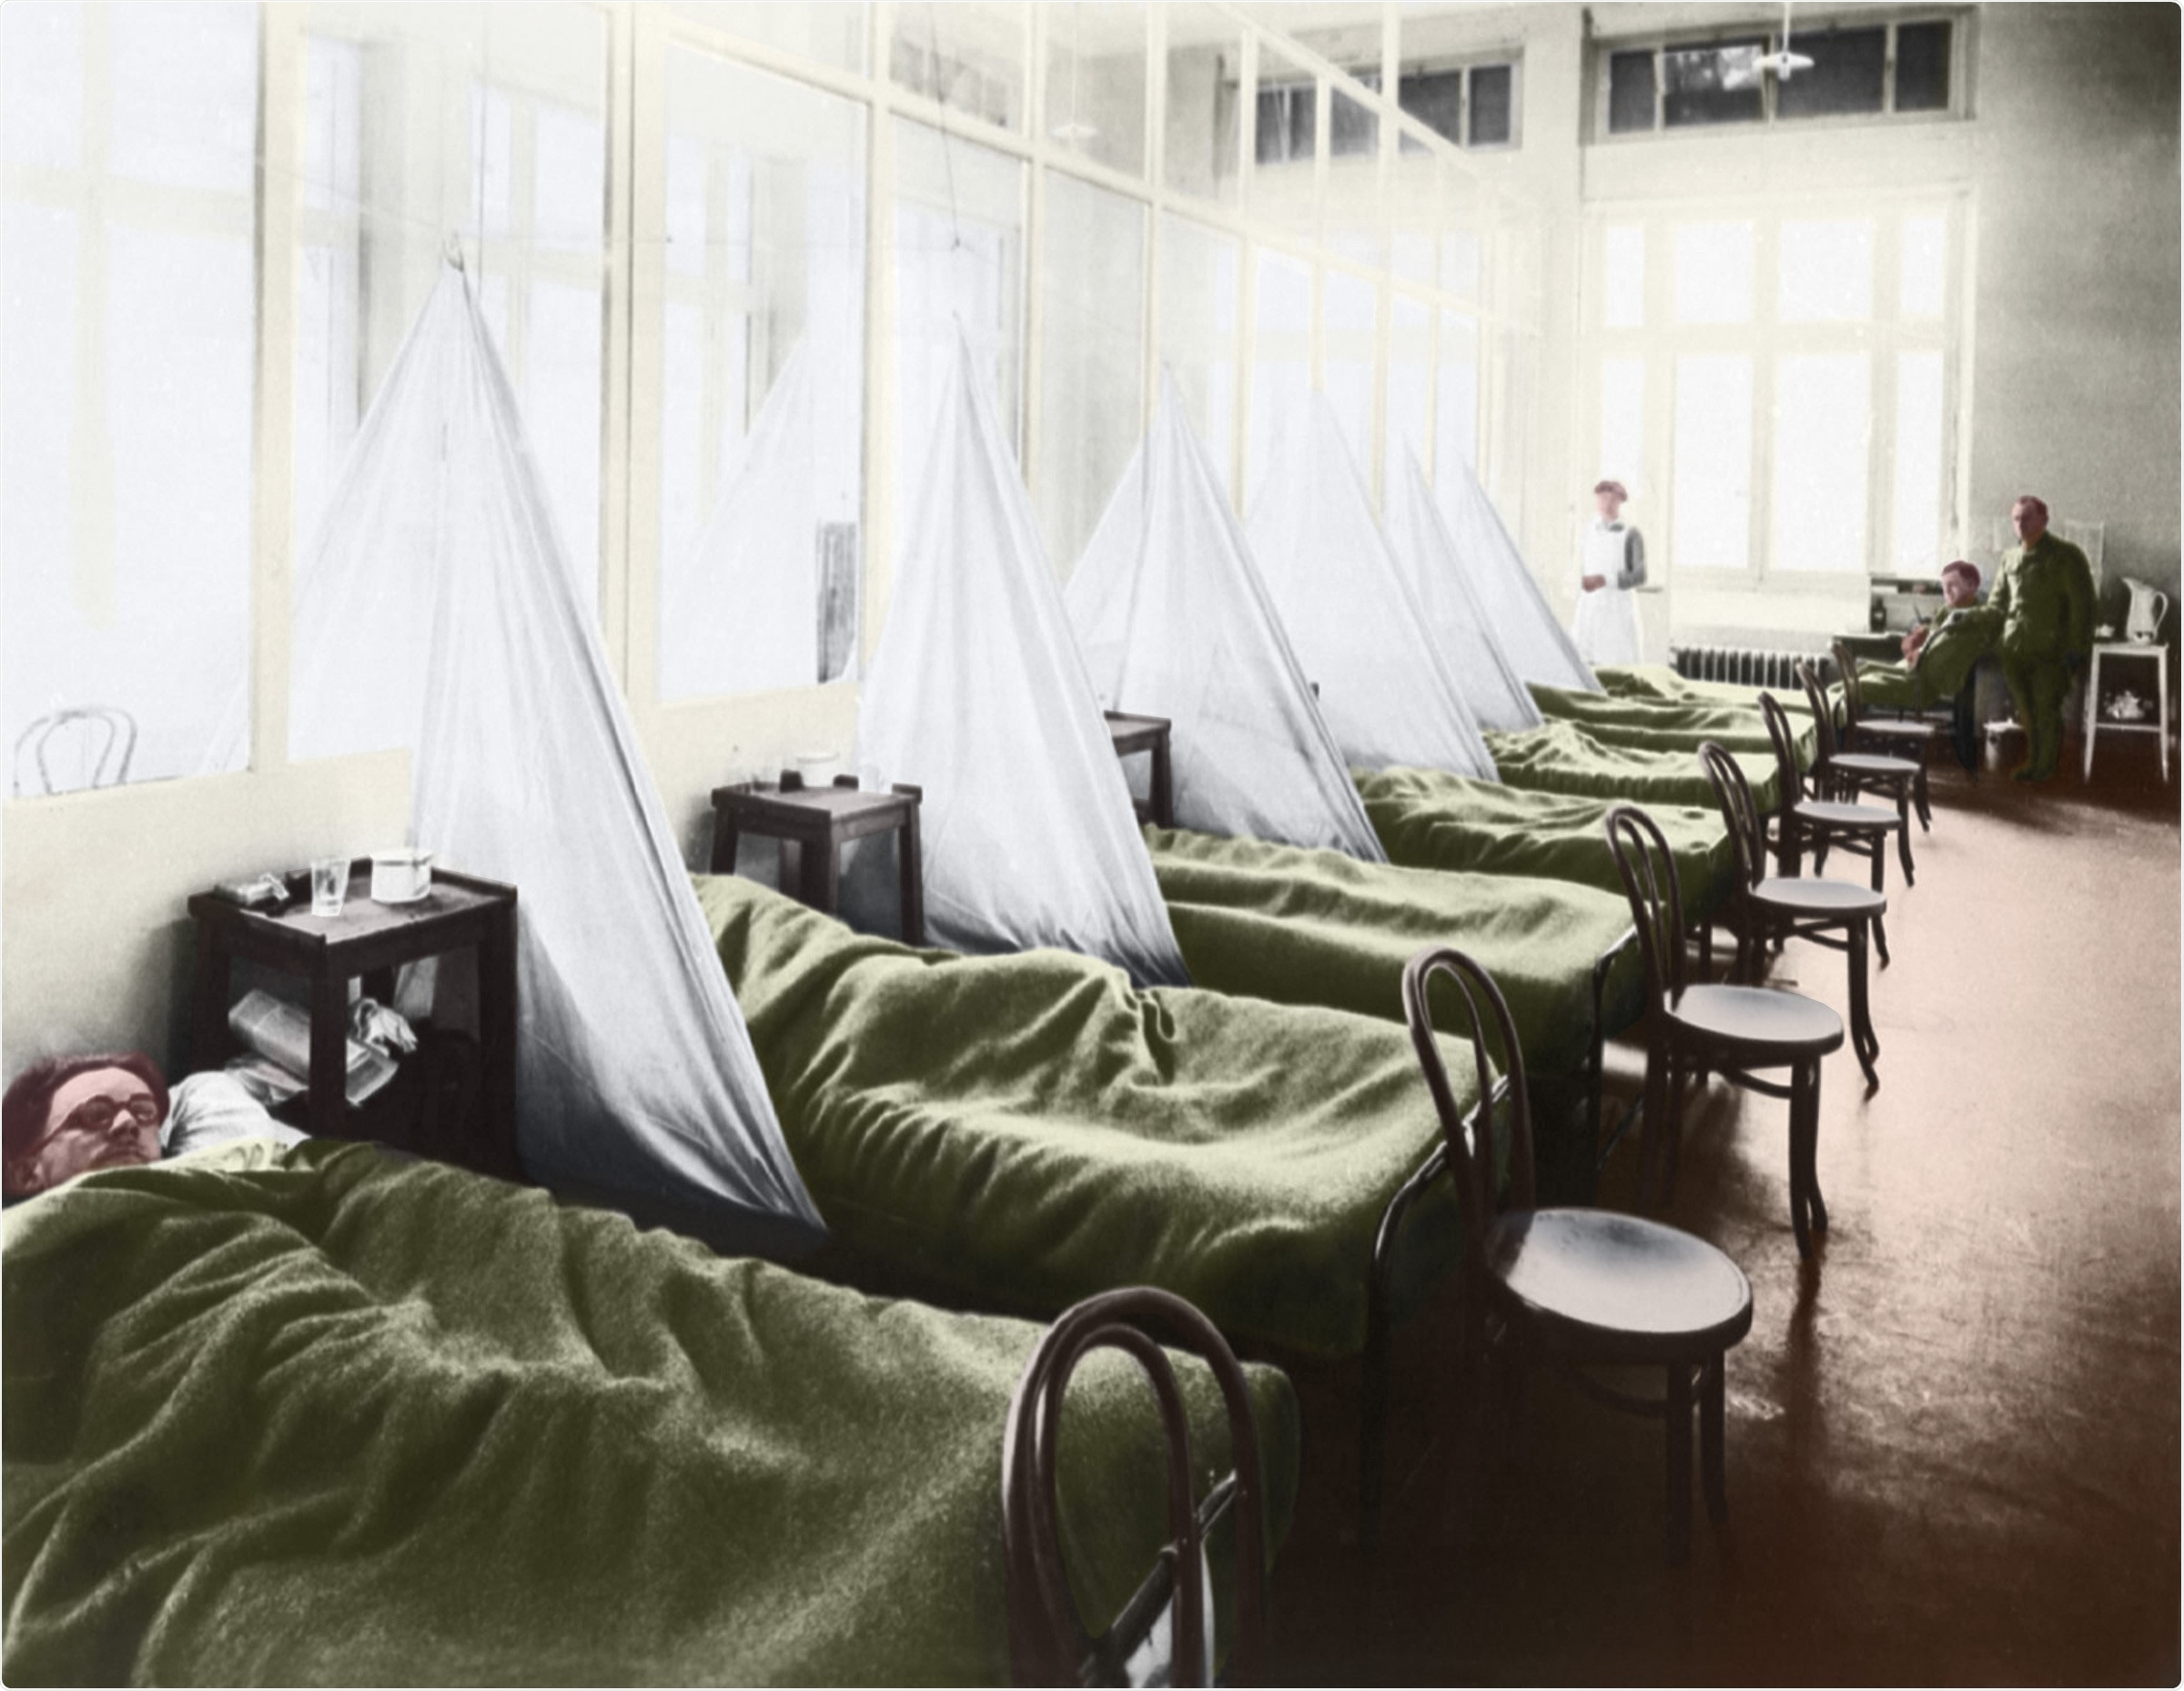 An influenza ward at the U S Army Camp Hospital in Aix-les-Bains France during the Spanish Flu epidemic of 1918-20. Image Credit: Everett Collection